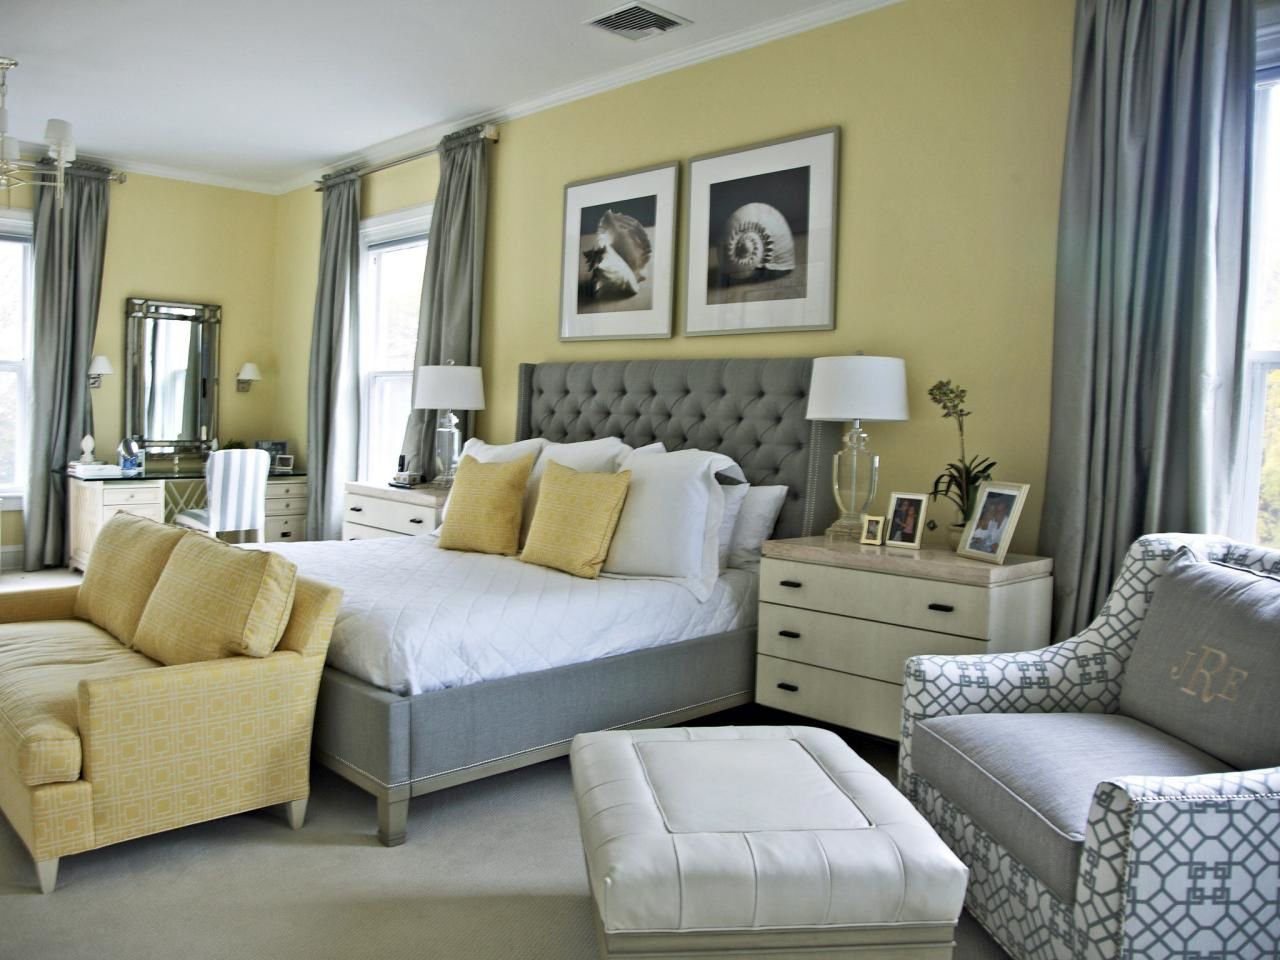 How To Decorate A Bedroom With Yellow, What Color Curtains With Mustard Yellow Walls